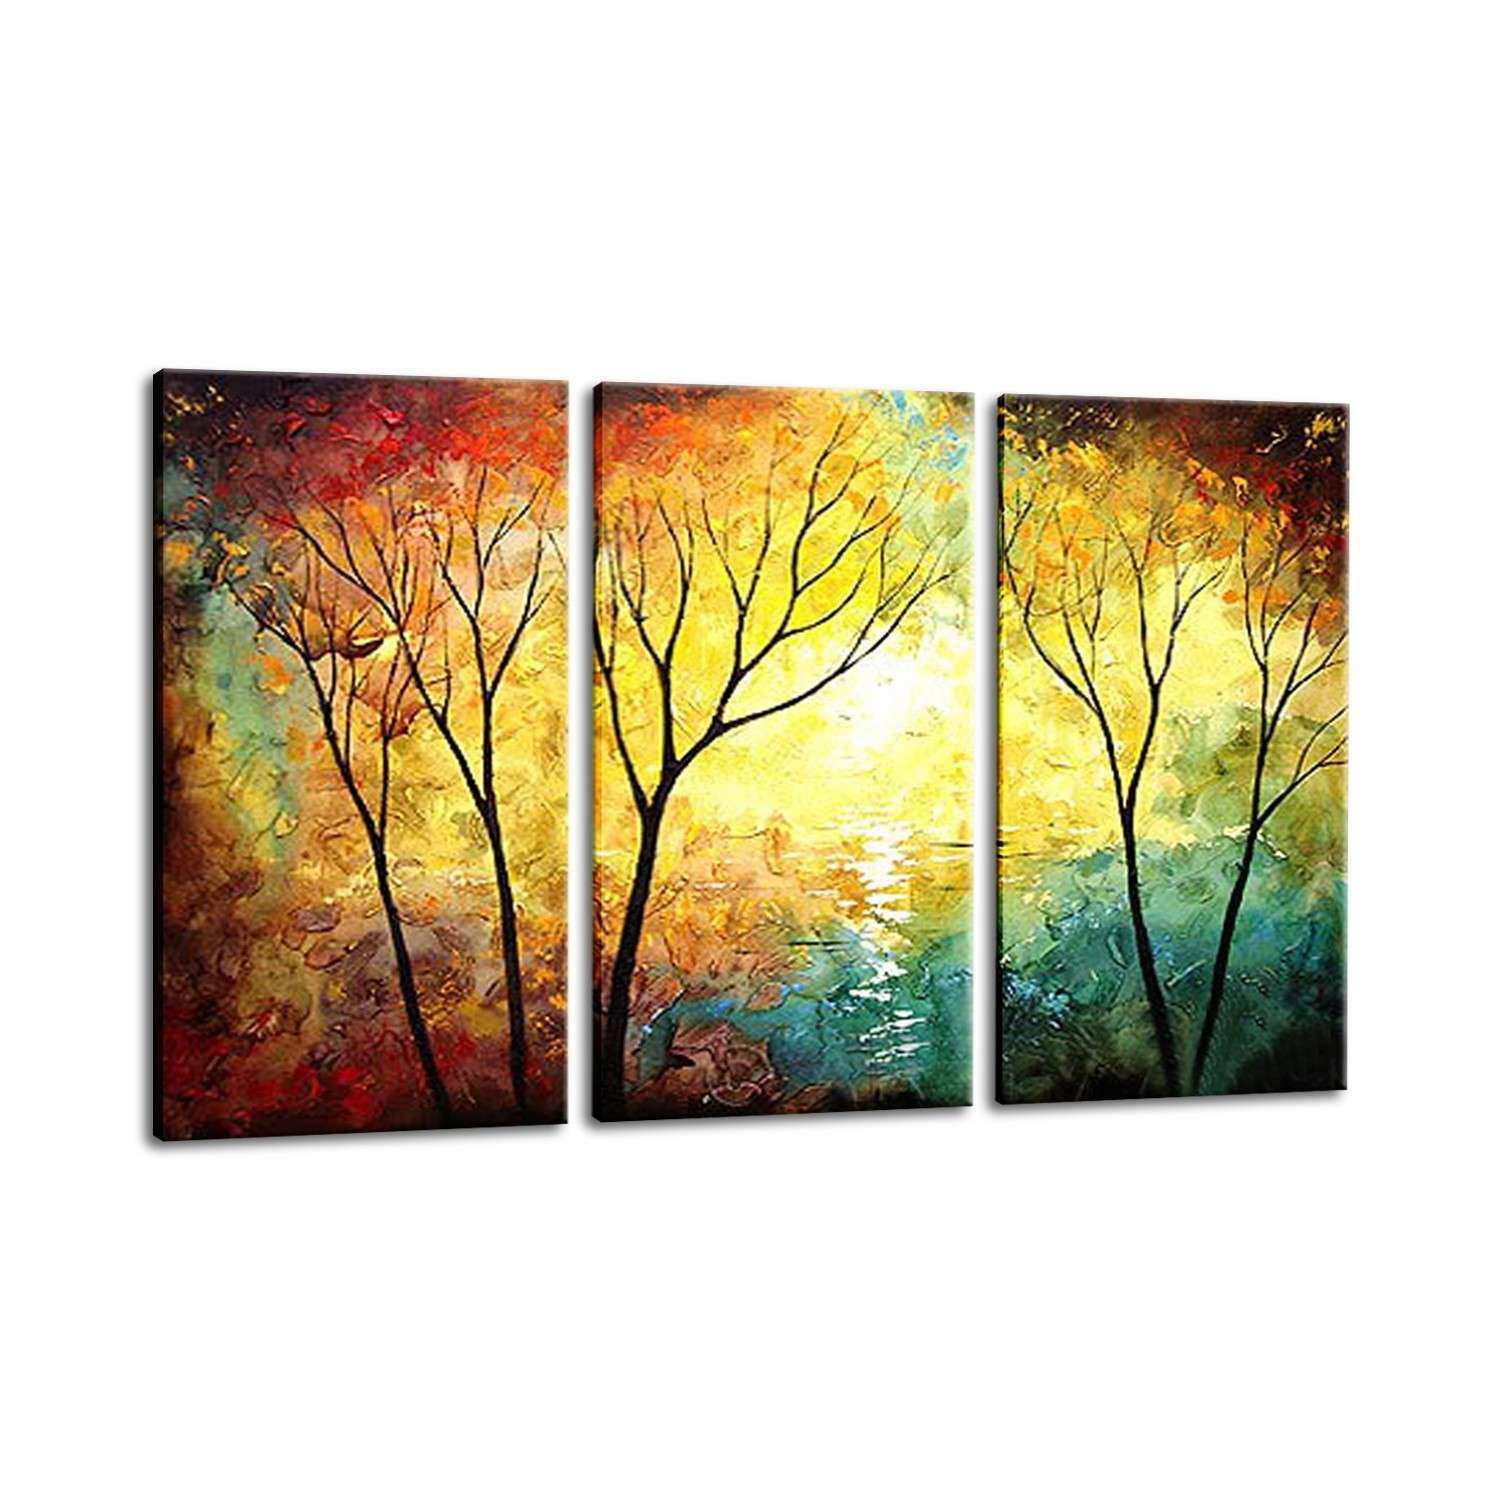 Tree Wall Art Canvas Luxury 3 Panel Set Wall Art Painting Yellow Red ...